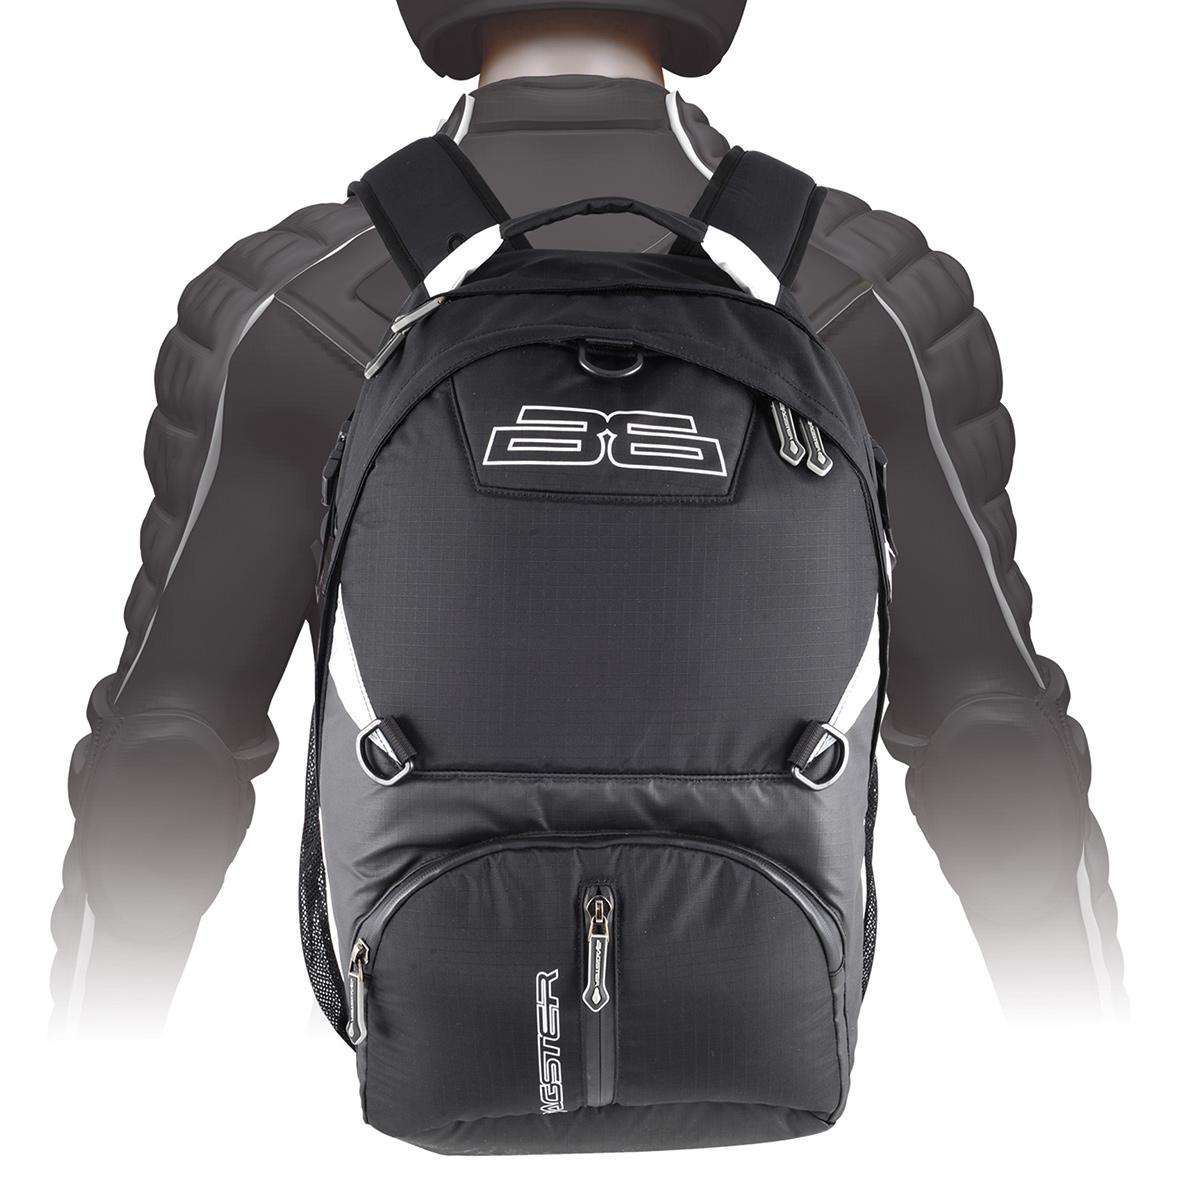 bagster trek 35 litre motorcycle backpack rucksack black sale ebay. Black Bedroom Furniture Sets. Home Design Ideas